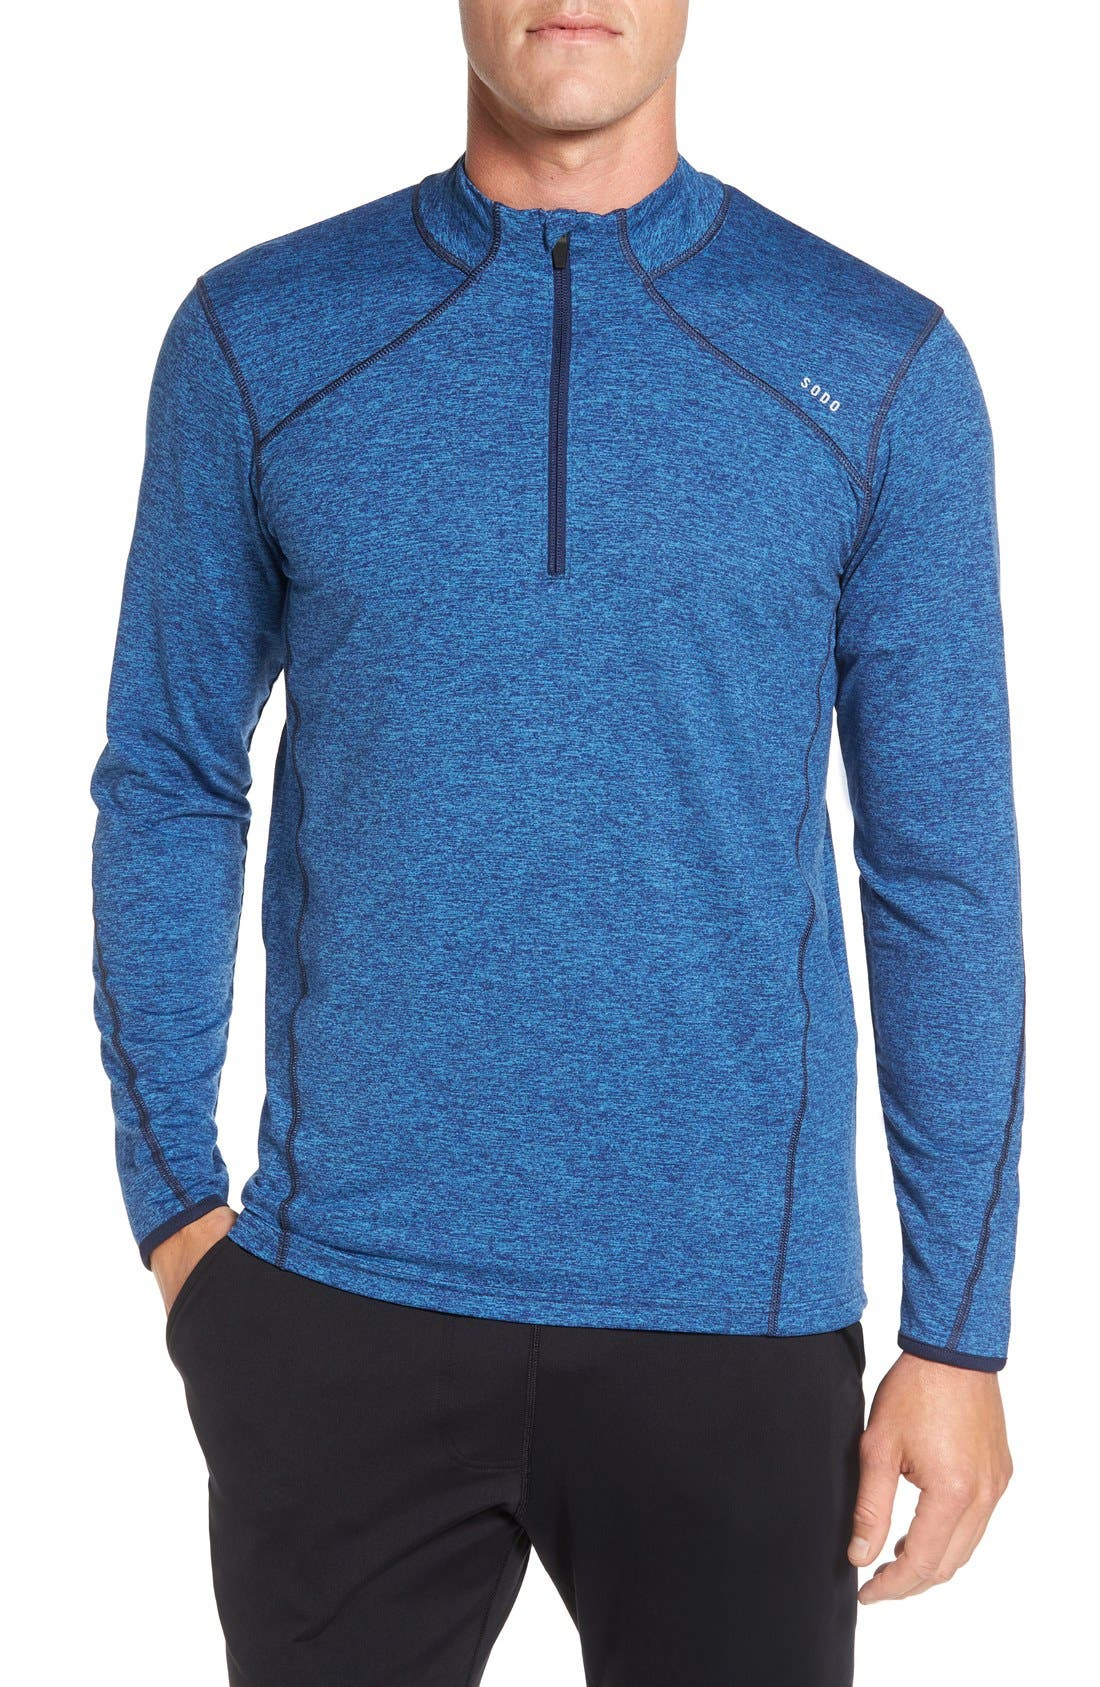 SODO, 'Elevate' Moisture Wicking Stretch Quarter Zip Pullover, Main thumbnail 1, color, OCEAN BLUE/ NAVY